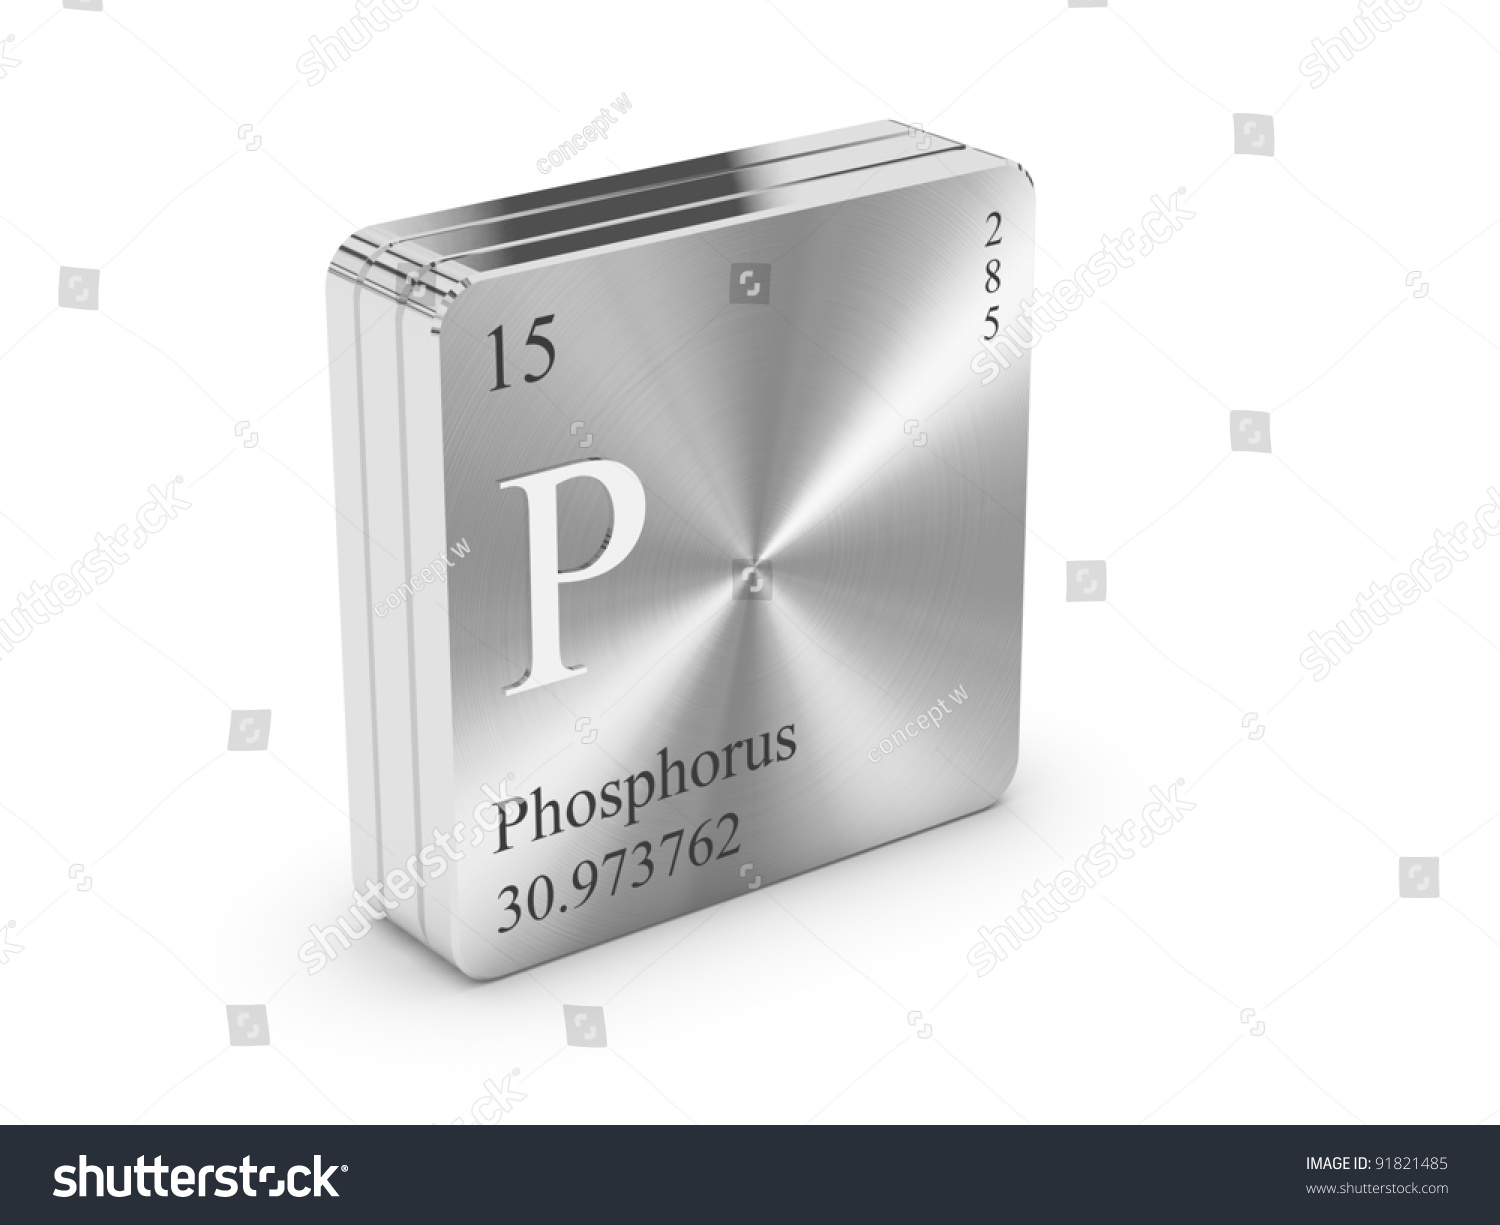 Is phosphorus a metal?